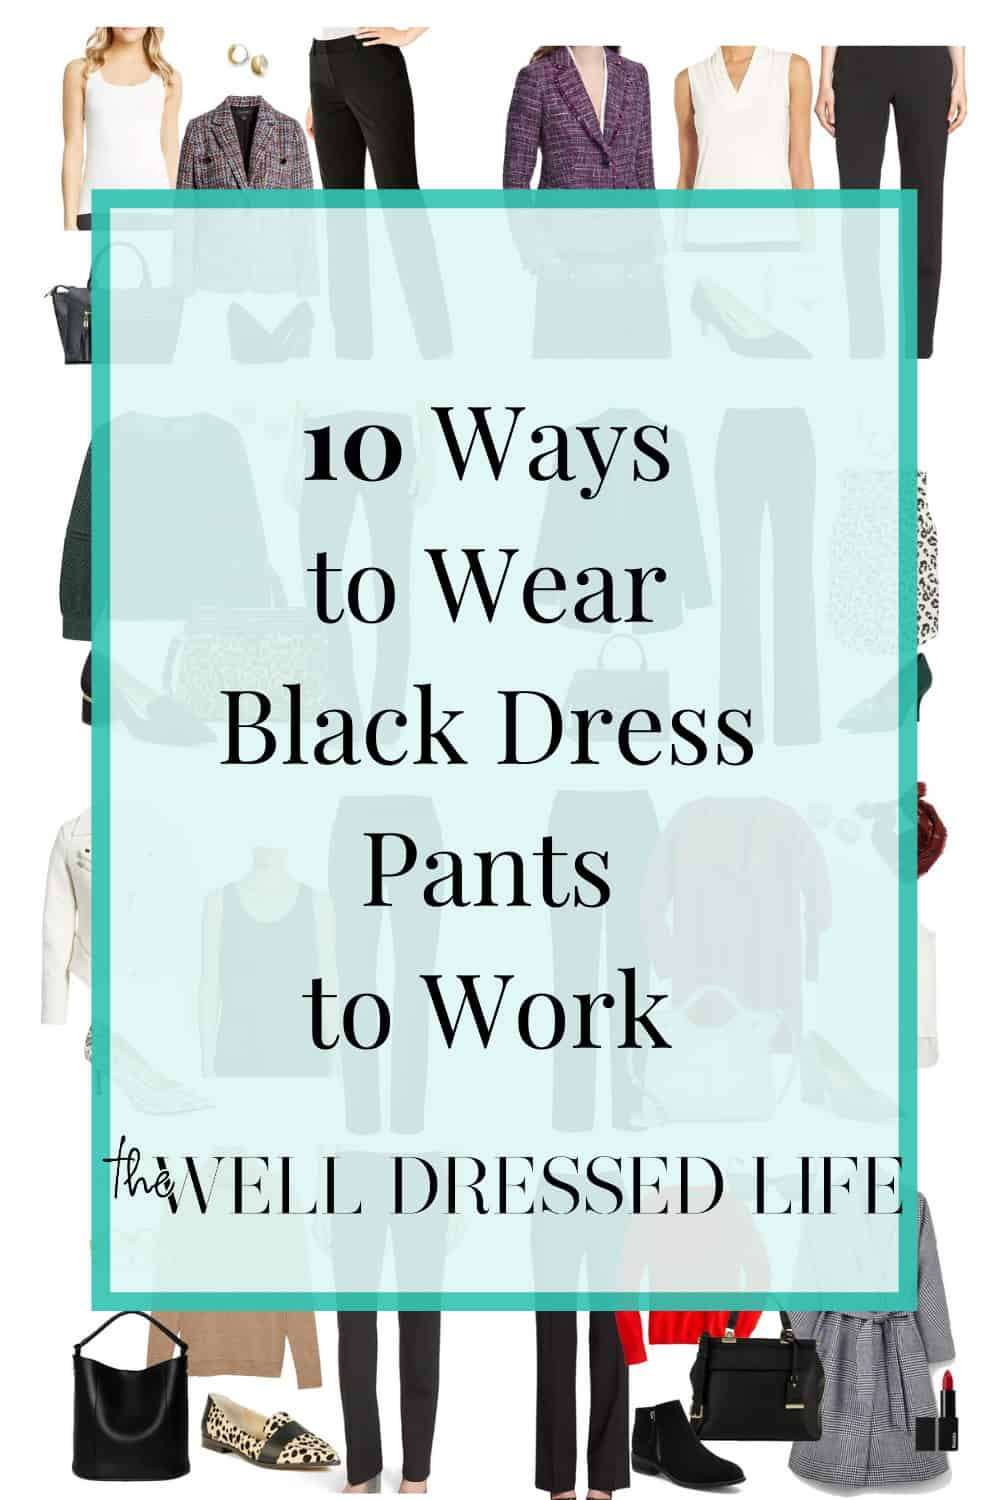 10 Ways to Wear Black Dress Pants to Work